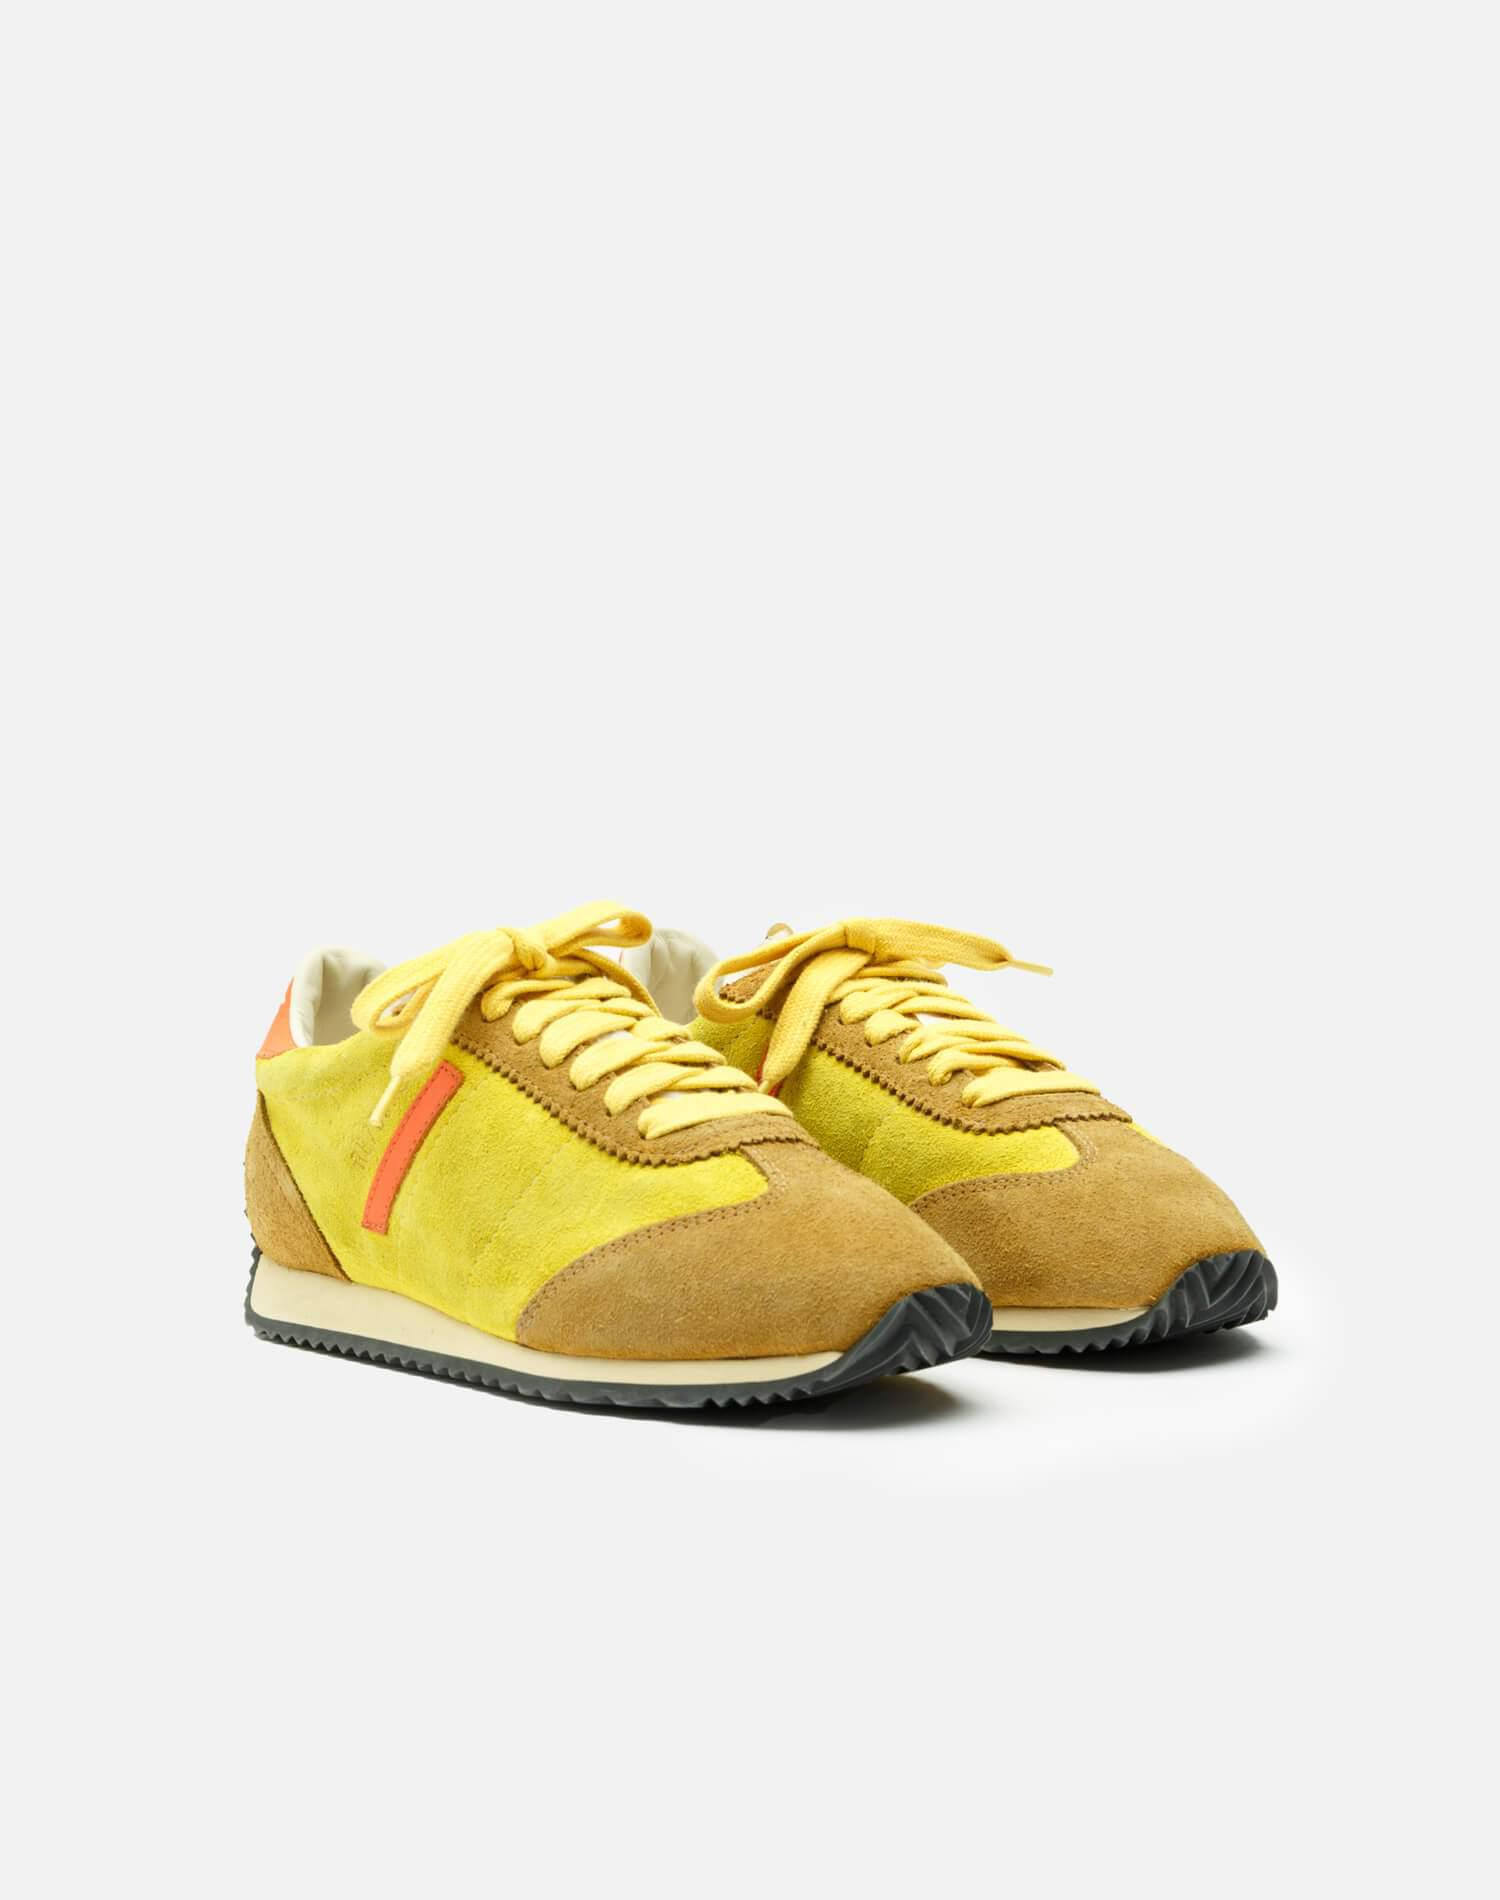 70s Runner Shoe - Lemon and Tan and Orange Suede 1